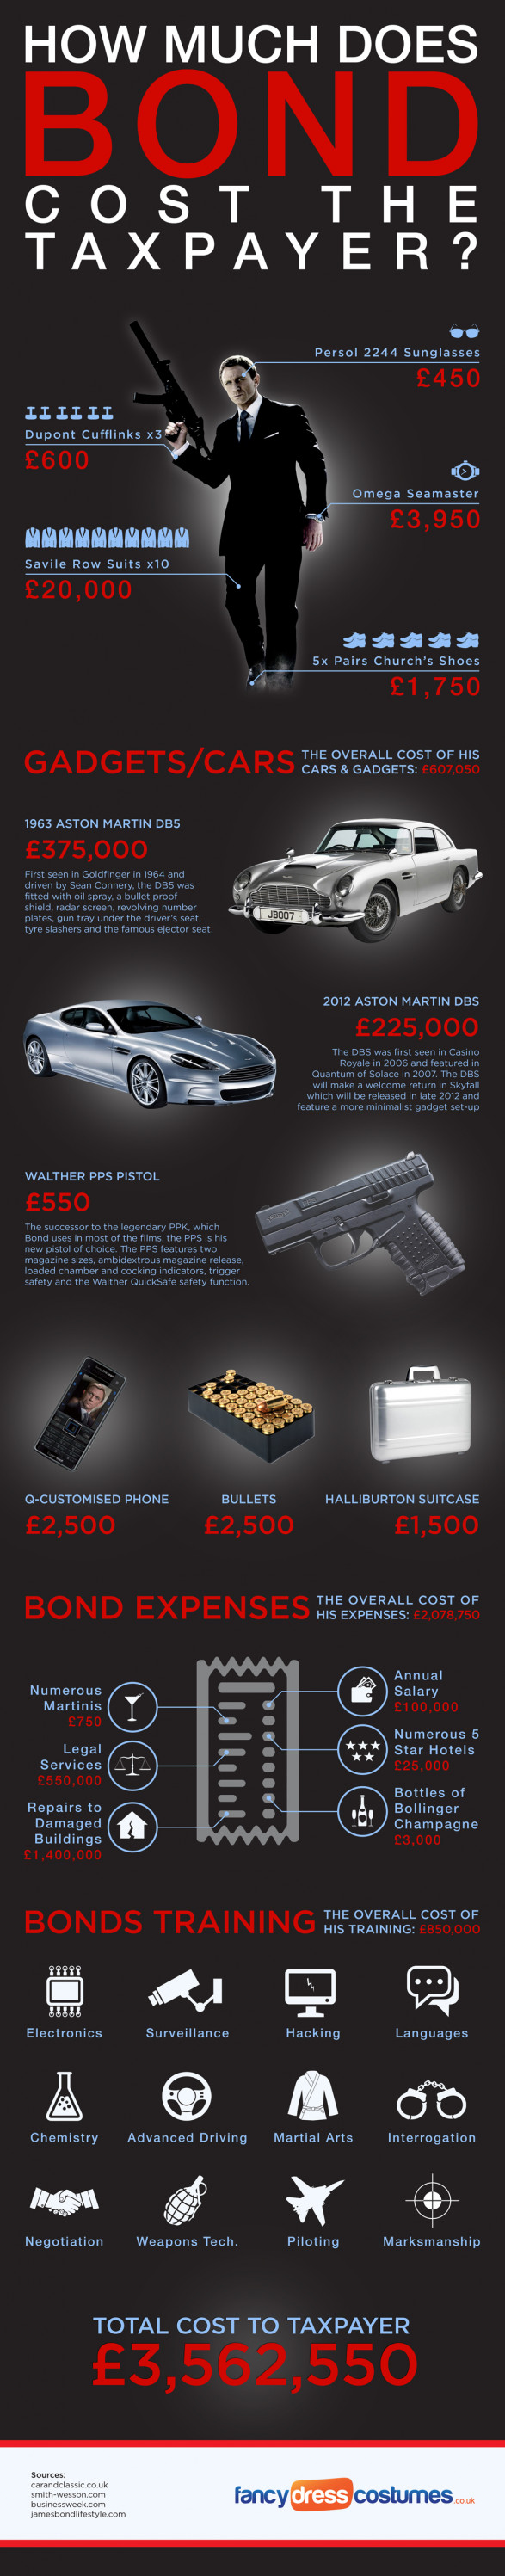 How Much Does James Bond Cost The Taxpayer?